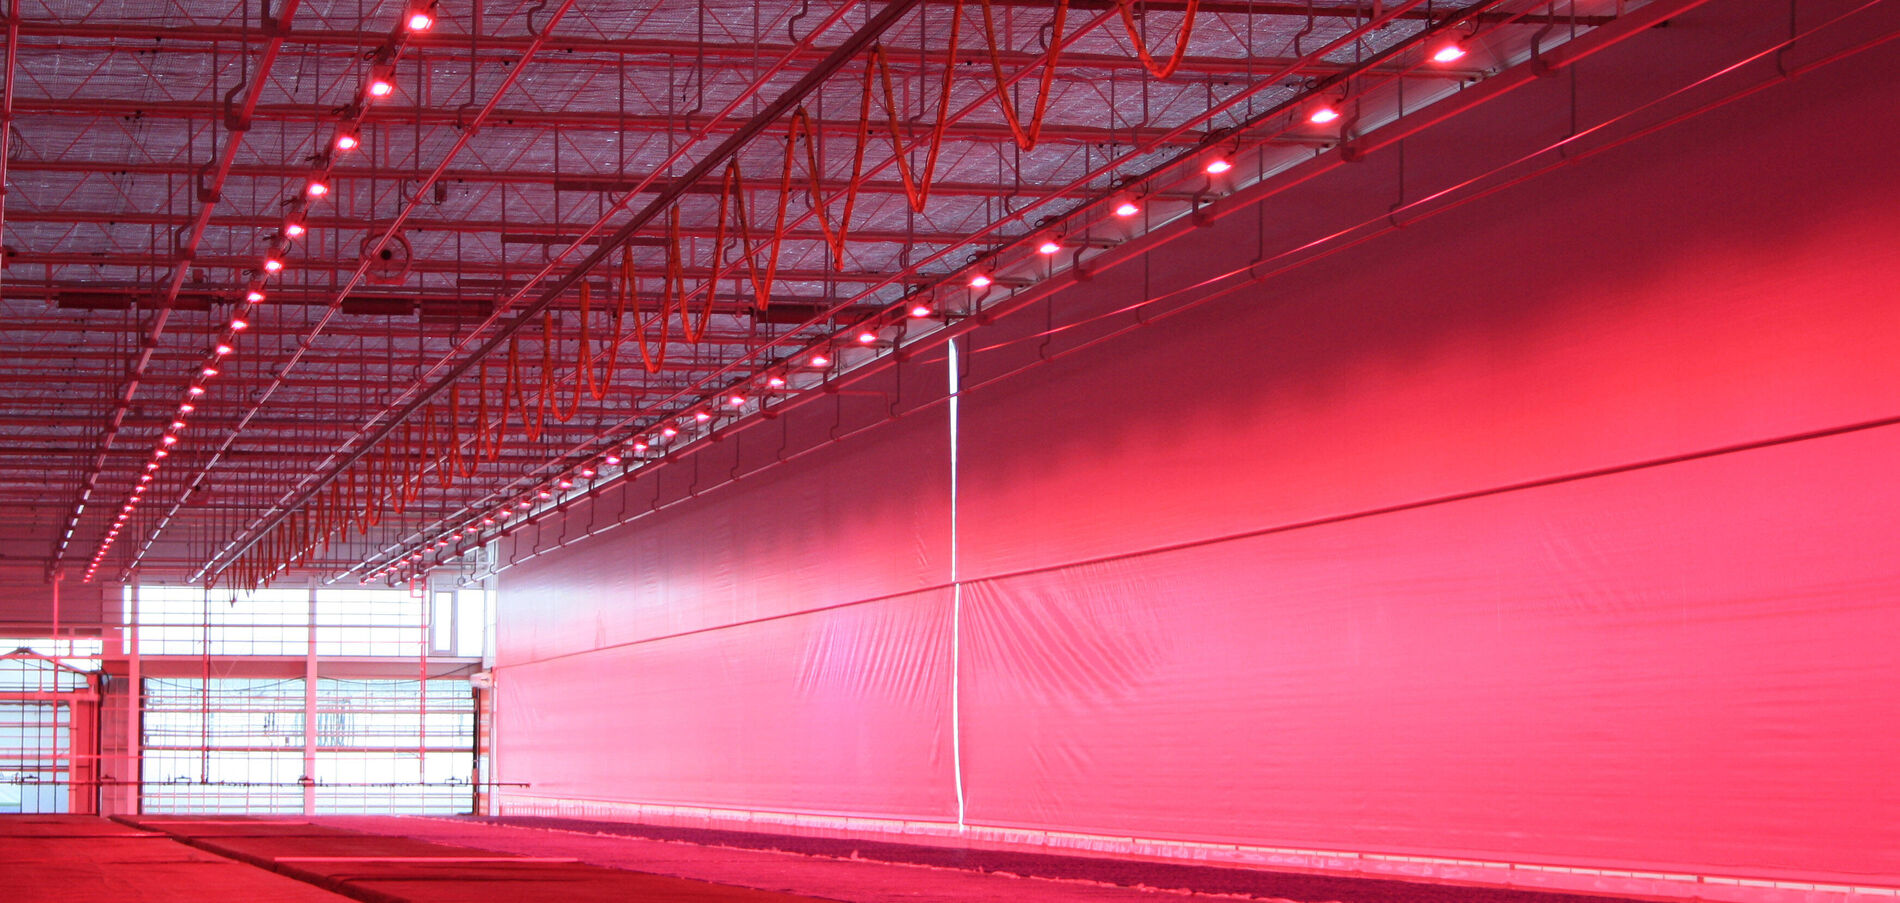 HortiDaily: Water cooled LED to cope with heat and humidity trapped under energy screens designed to limit light emission